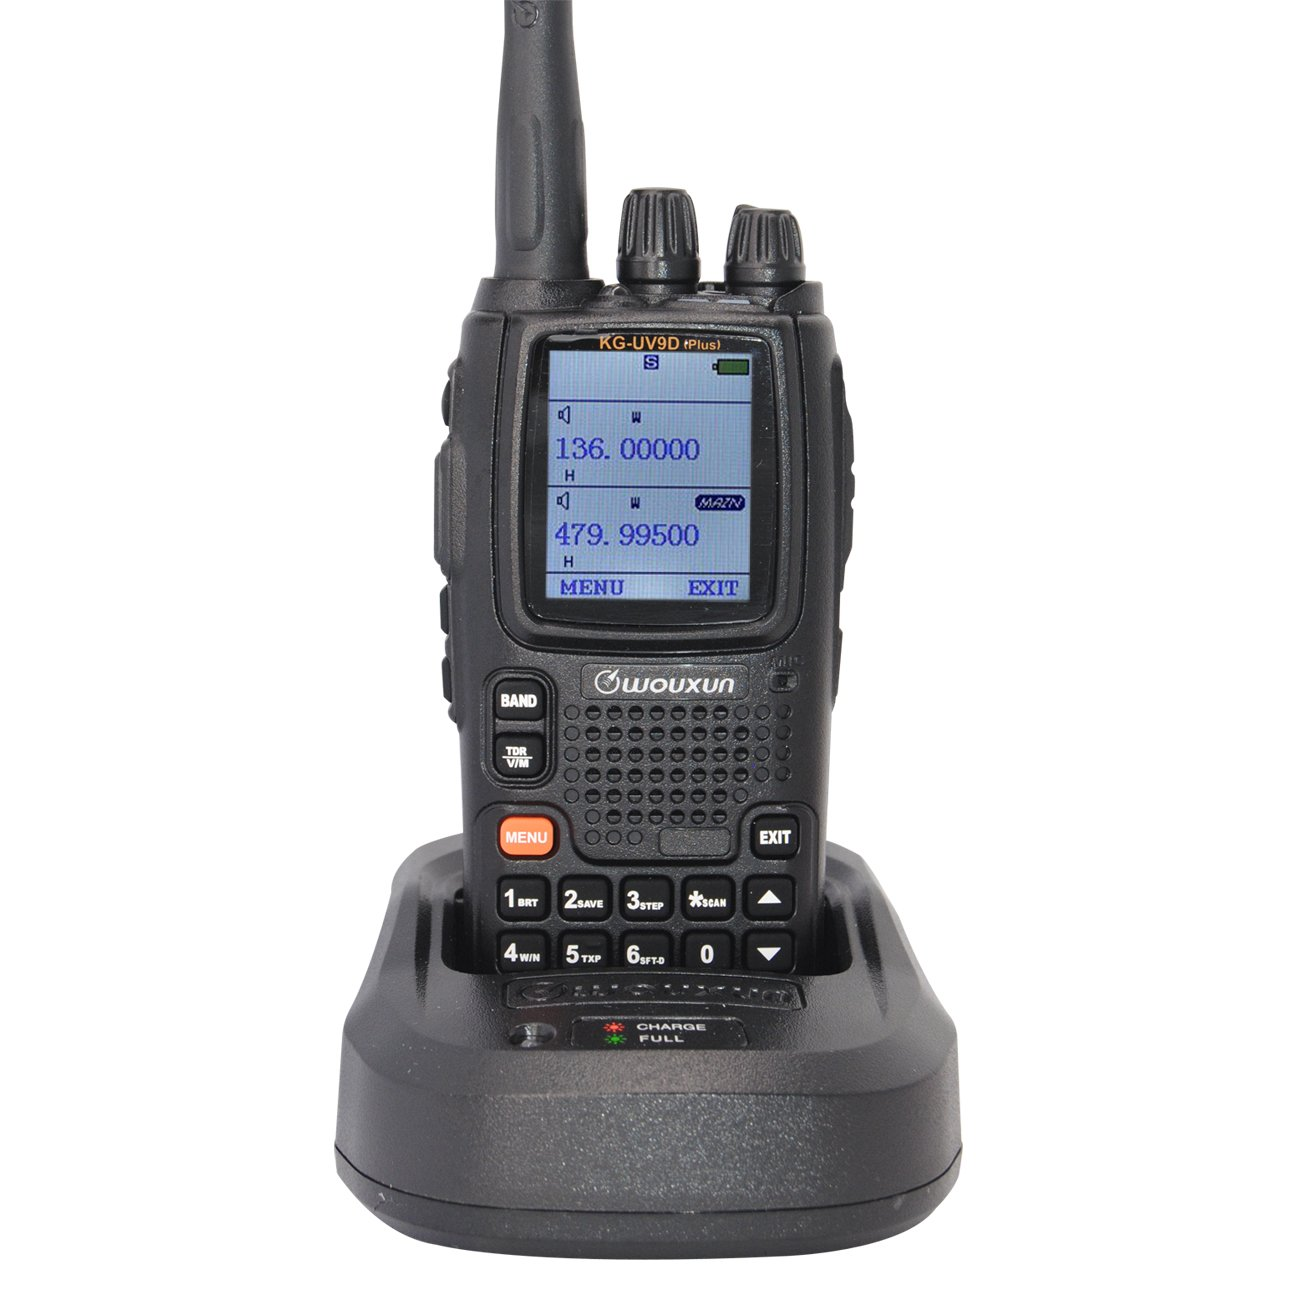 Walkie Talkie Long Range Rechargeable KG-UV9D Plus Dual Band VHF UHF Radio Transceiver with Earpiece and Programming Cable Easy Communications(H.K)Co. Ltd.